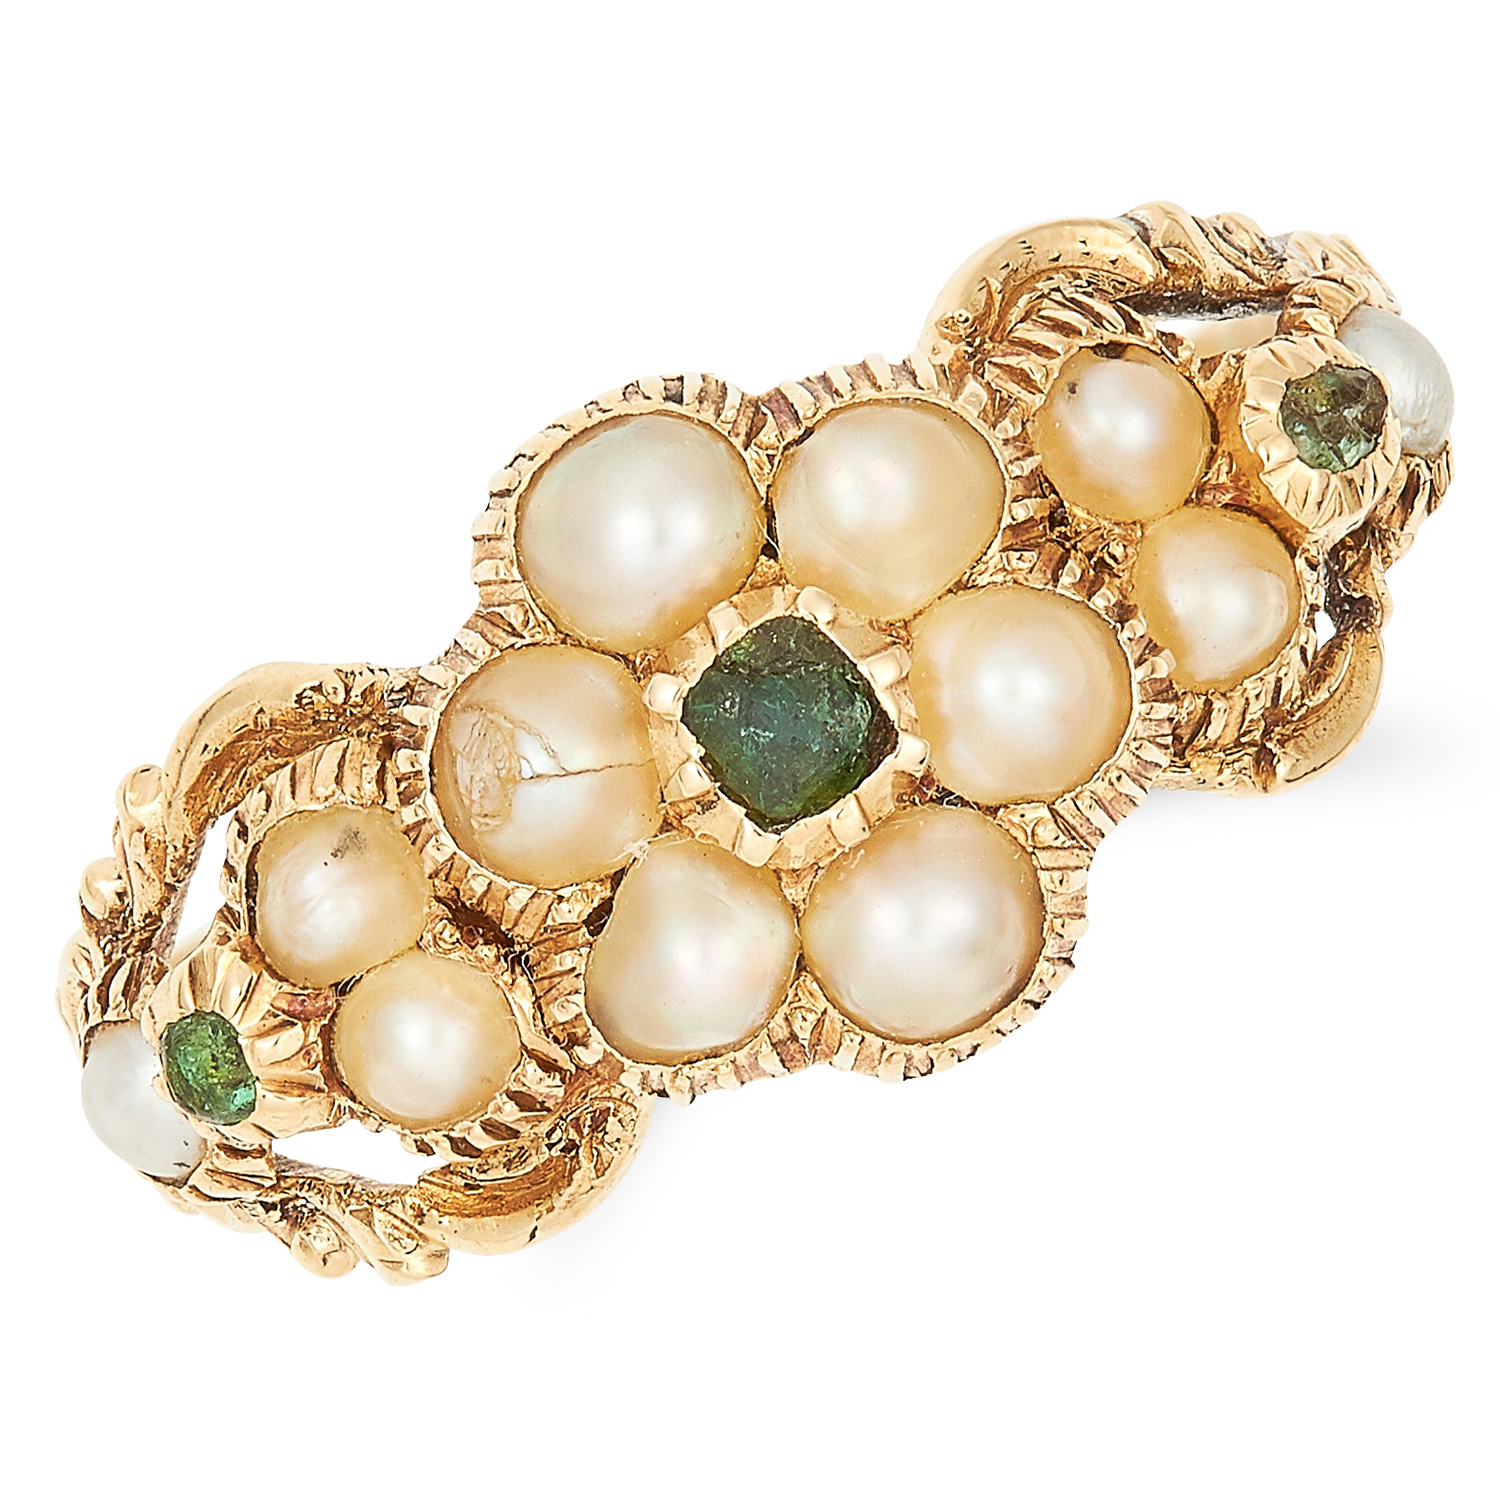 ANTIQUE VICTORIAN PEARL AND EMERALD RING in high carat yellow gold, set with seed pearls and cushion